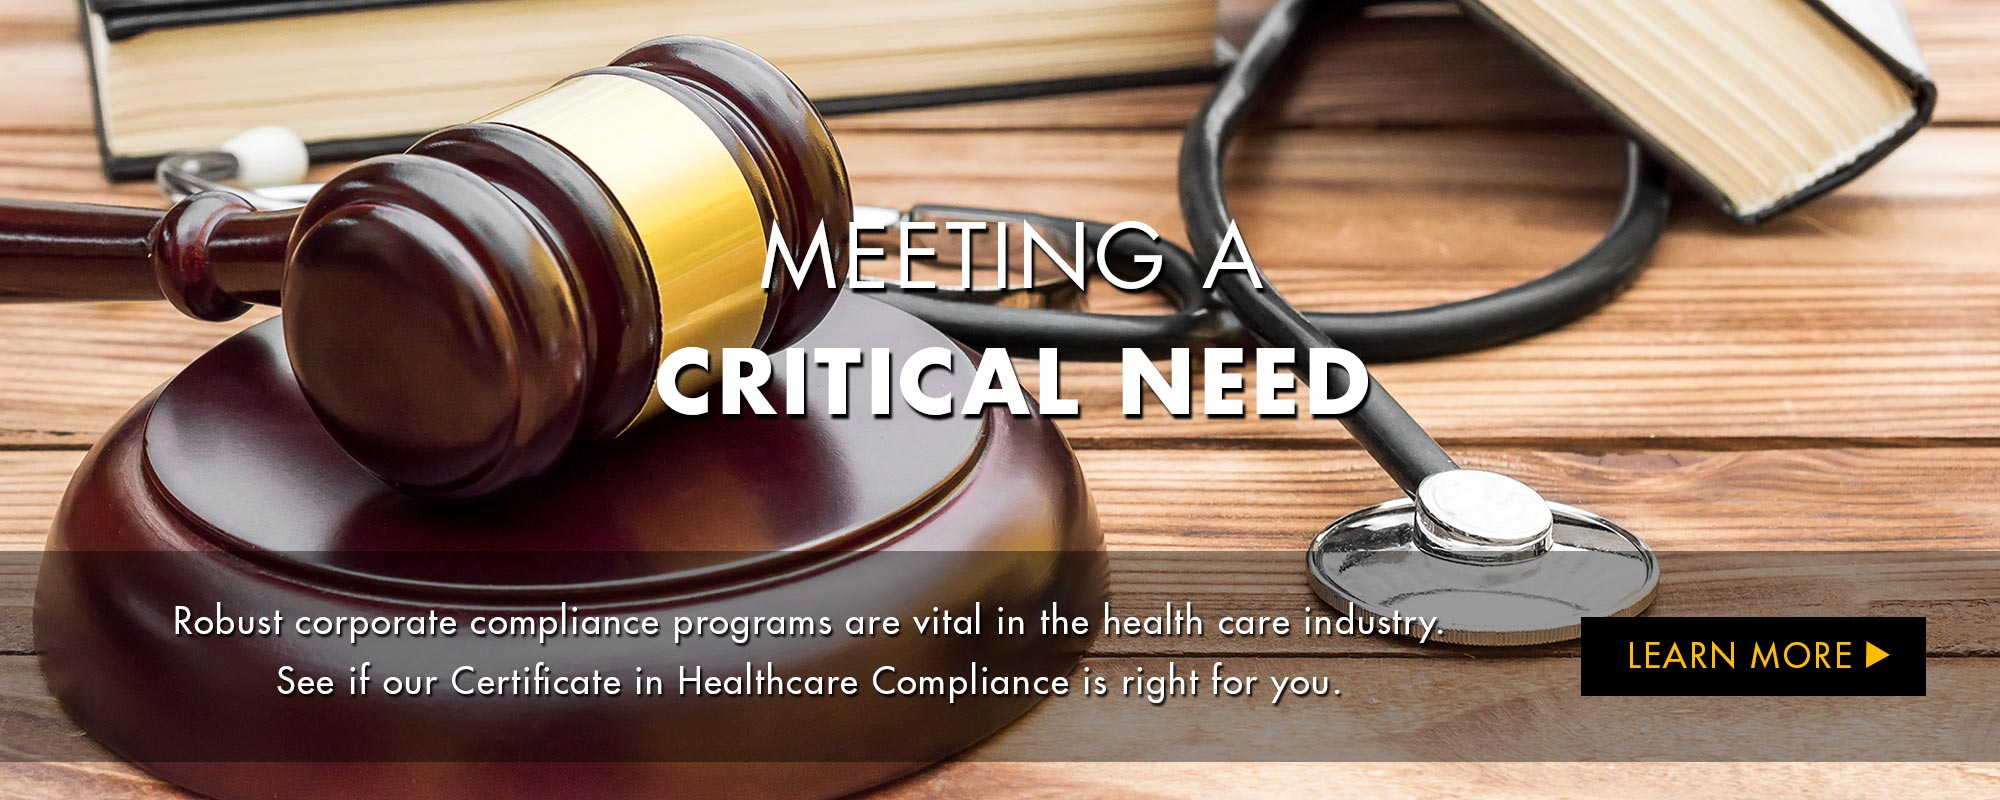 Meeting a Critical Need: Robust corporate compliance programs are vital in the health care industry. See if our Certificate in Healthcare Compliance is right for you. Learn more.